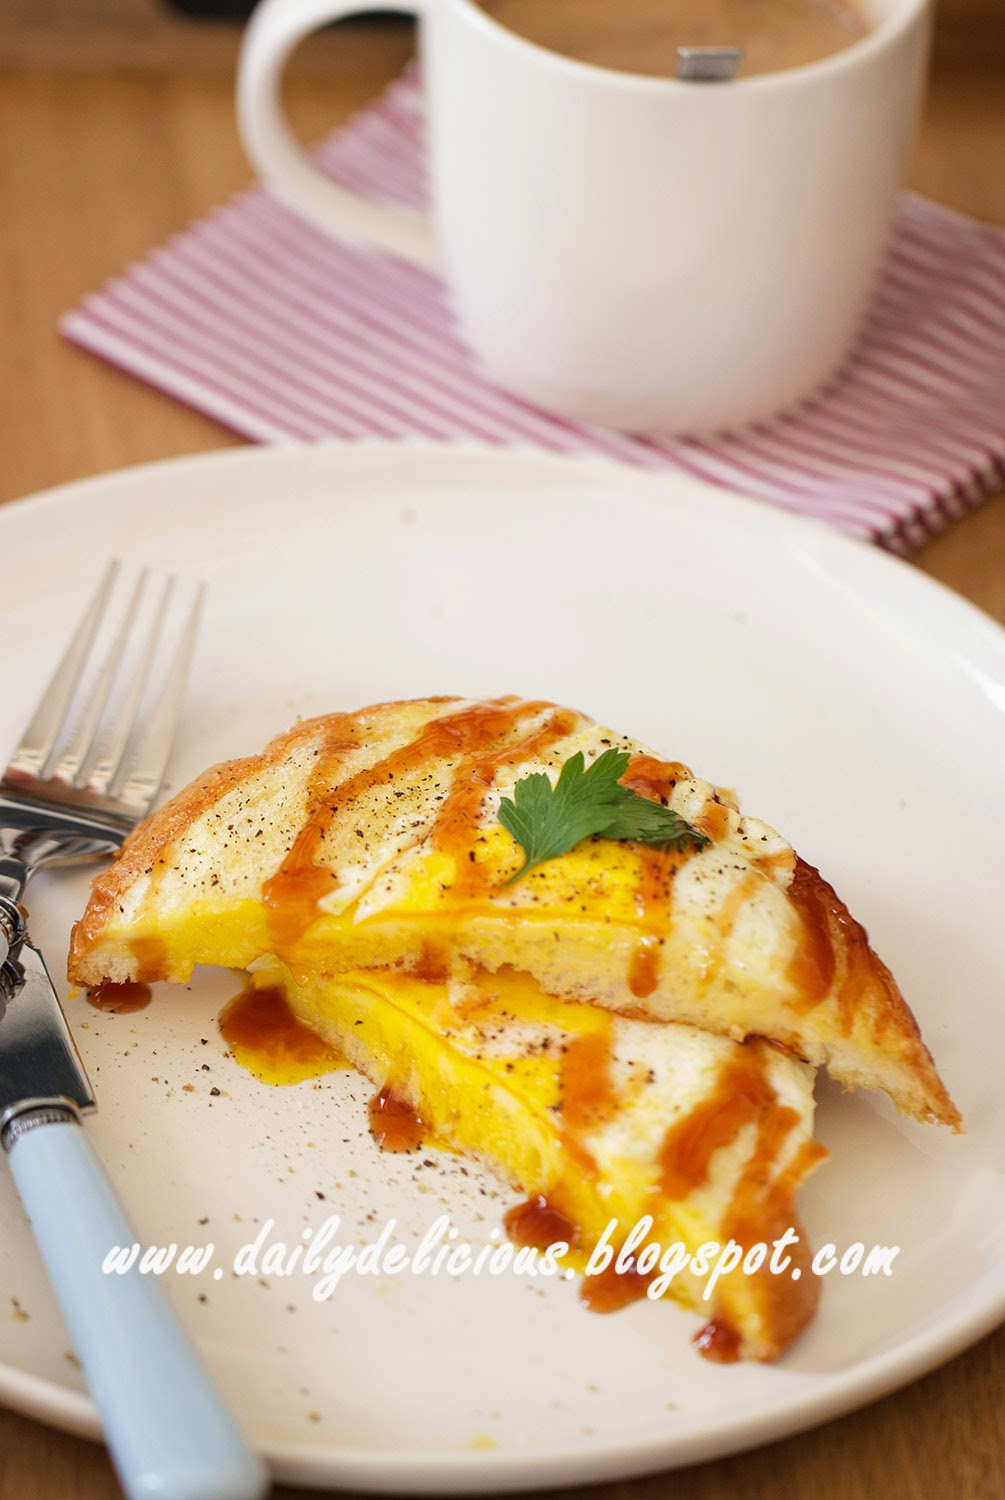 dailydelicious: Good morning!: Egg and Cheese Breakfast ...